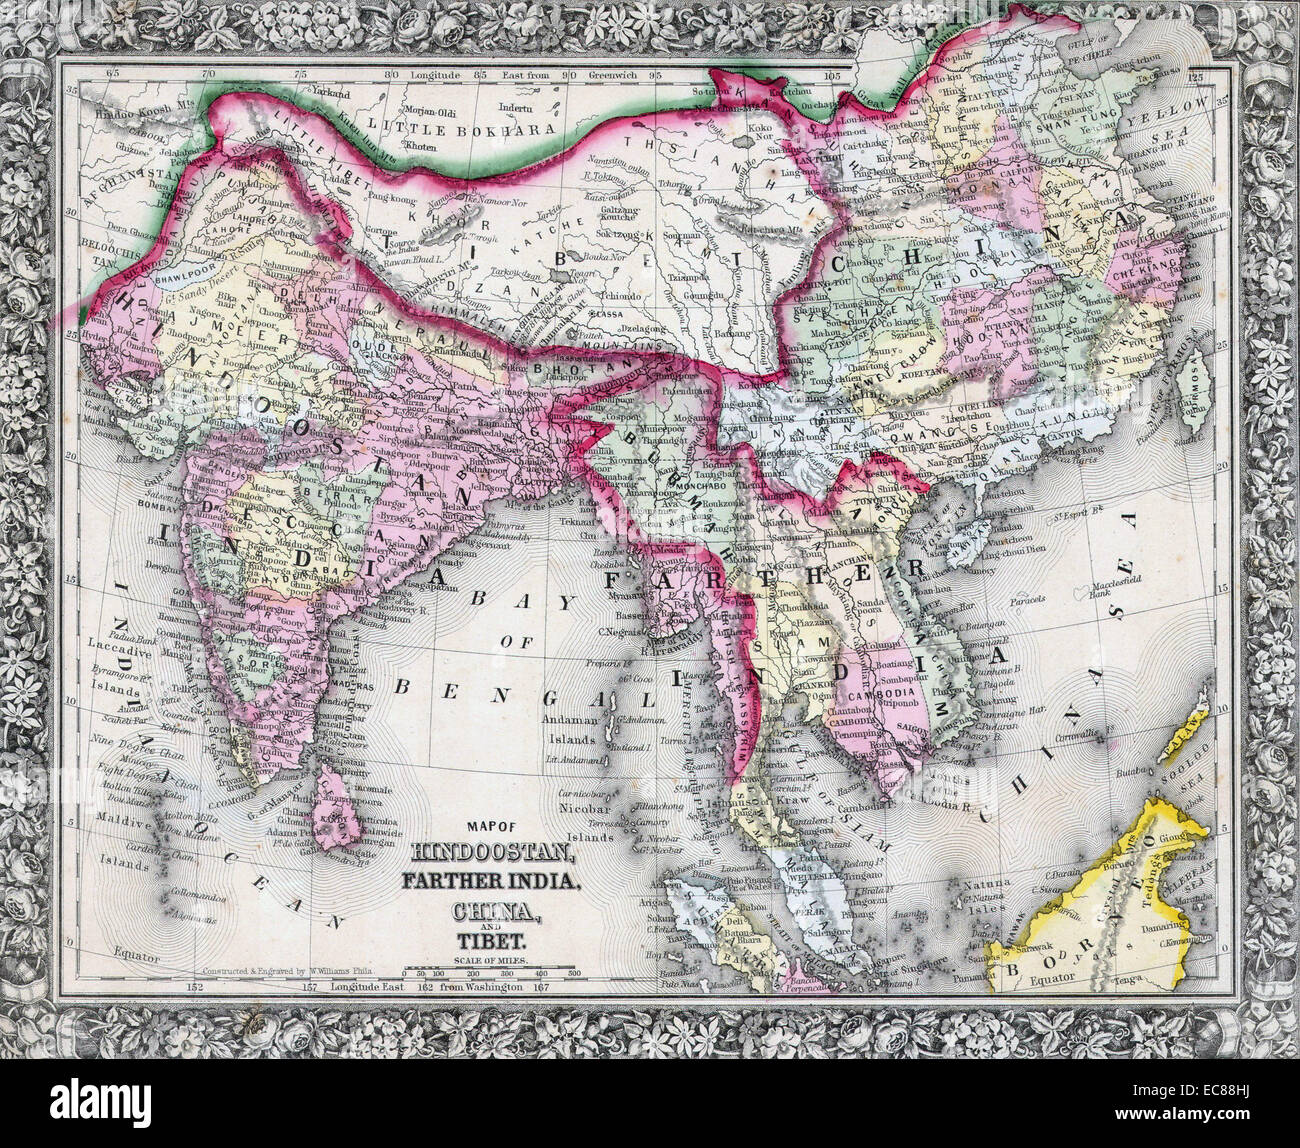 Map Of China And Southeast Asia.Mitchell Map Of India Tibet China And Southeast Asia Dated 1864